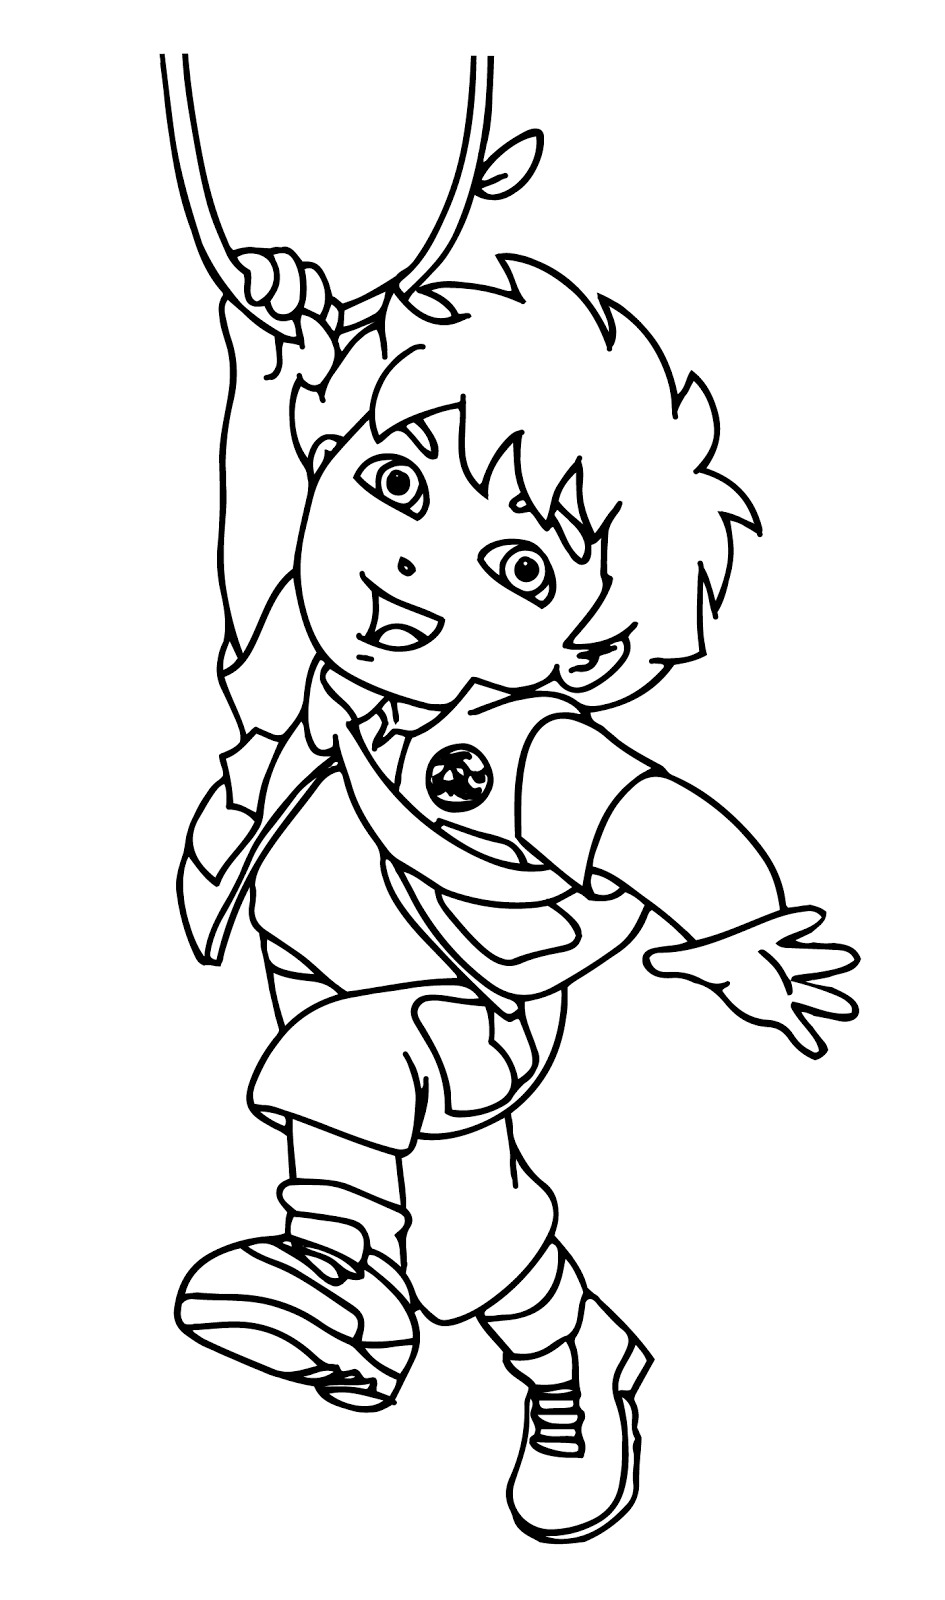 Páginas para colorear originales Original coloring pages: Go Diego ...